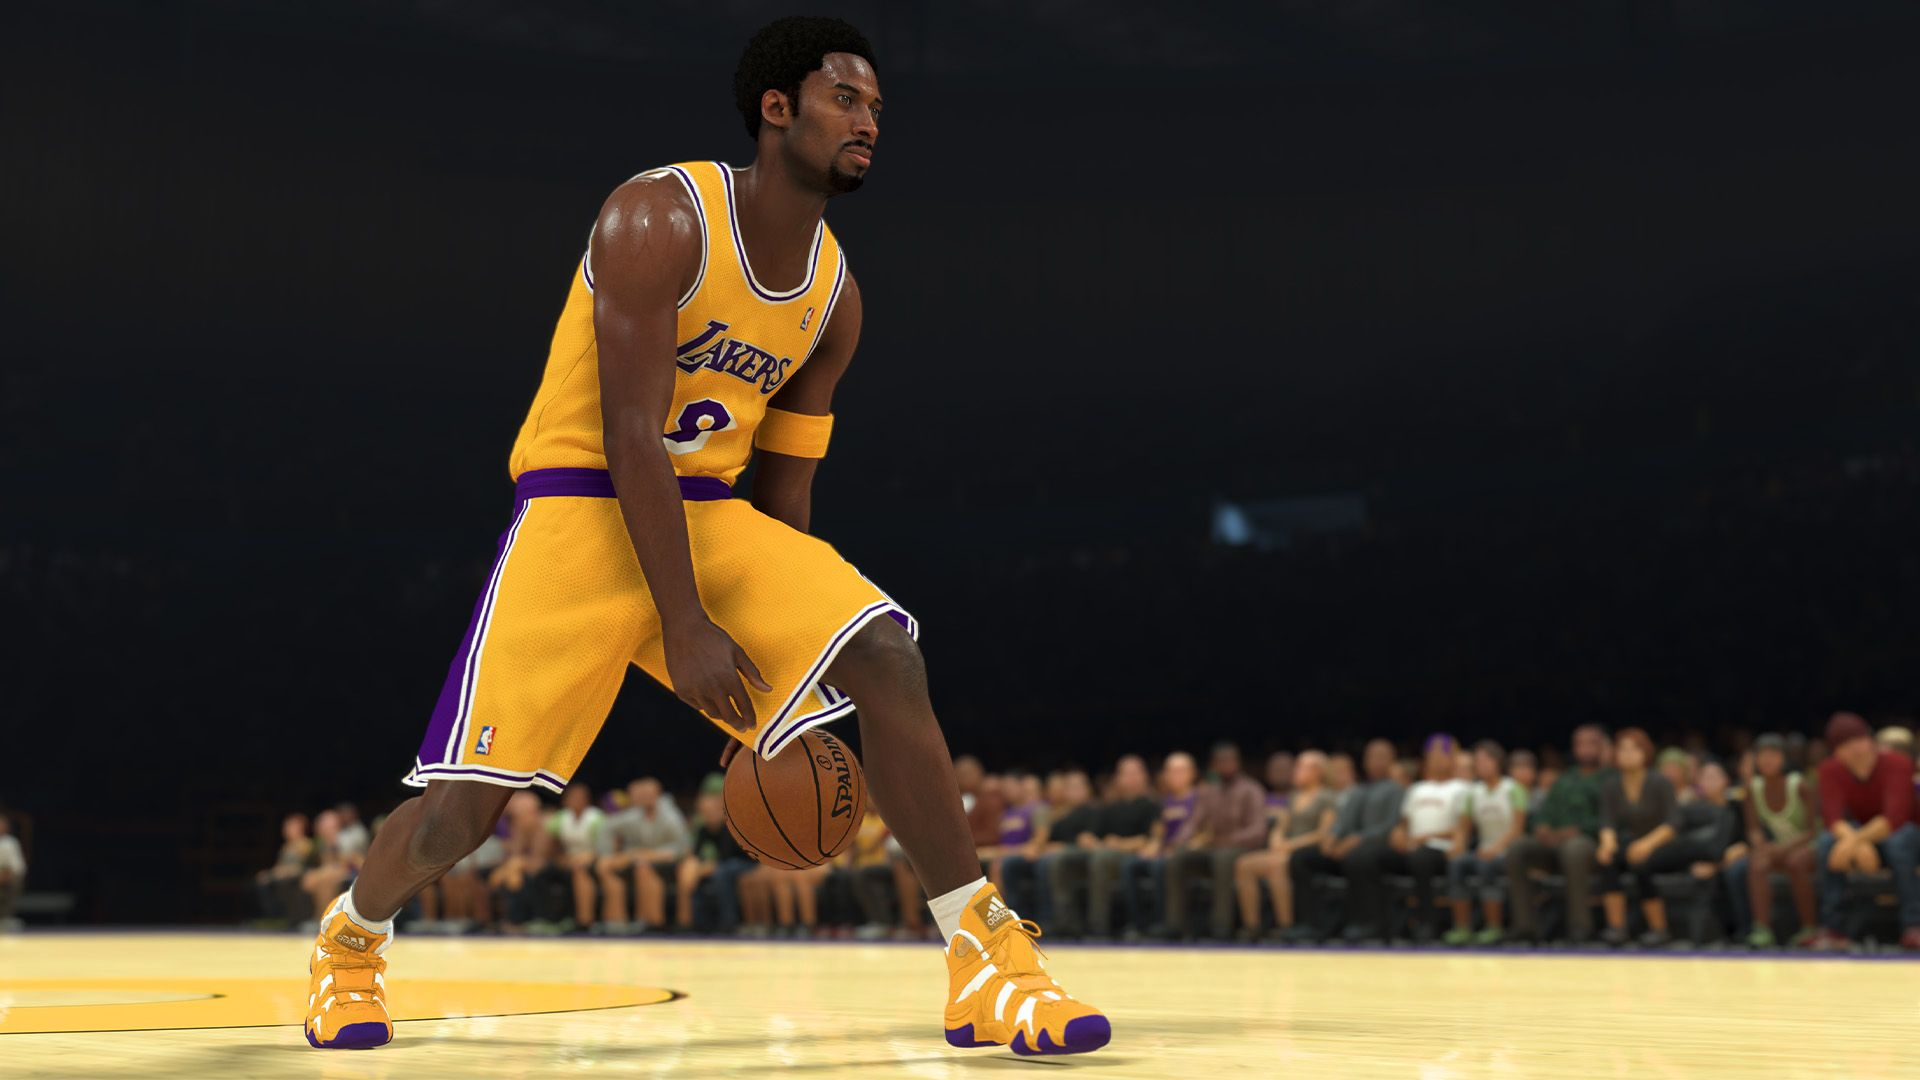 Nba 2k22 Release Date Features 10 Things To Know